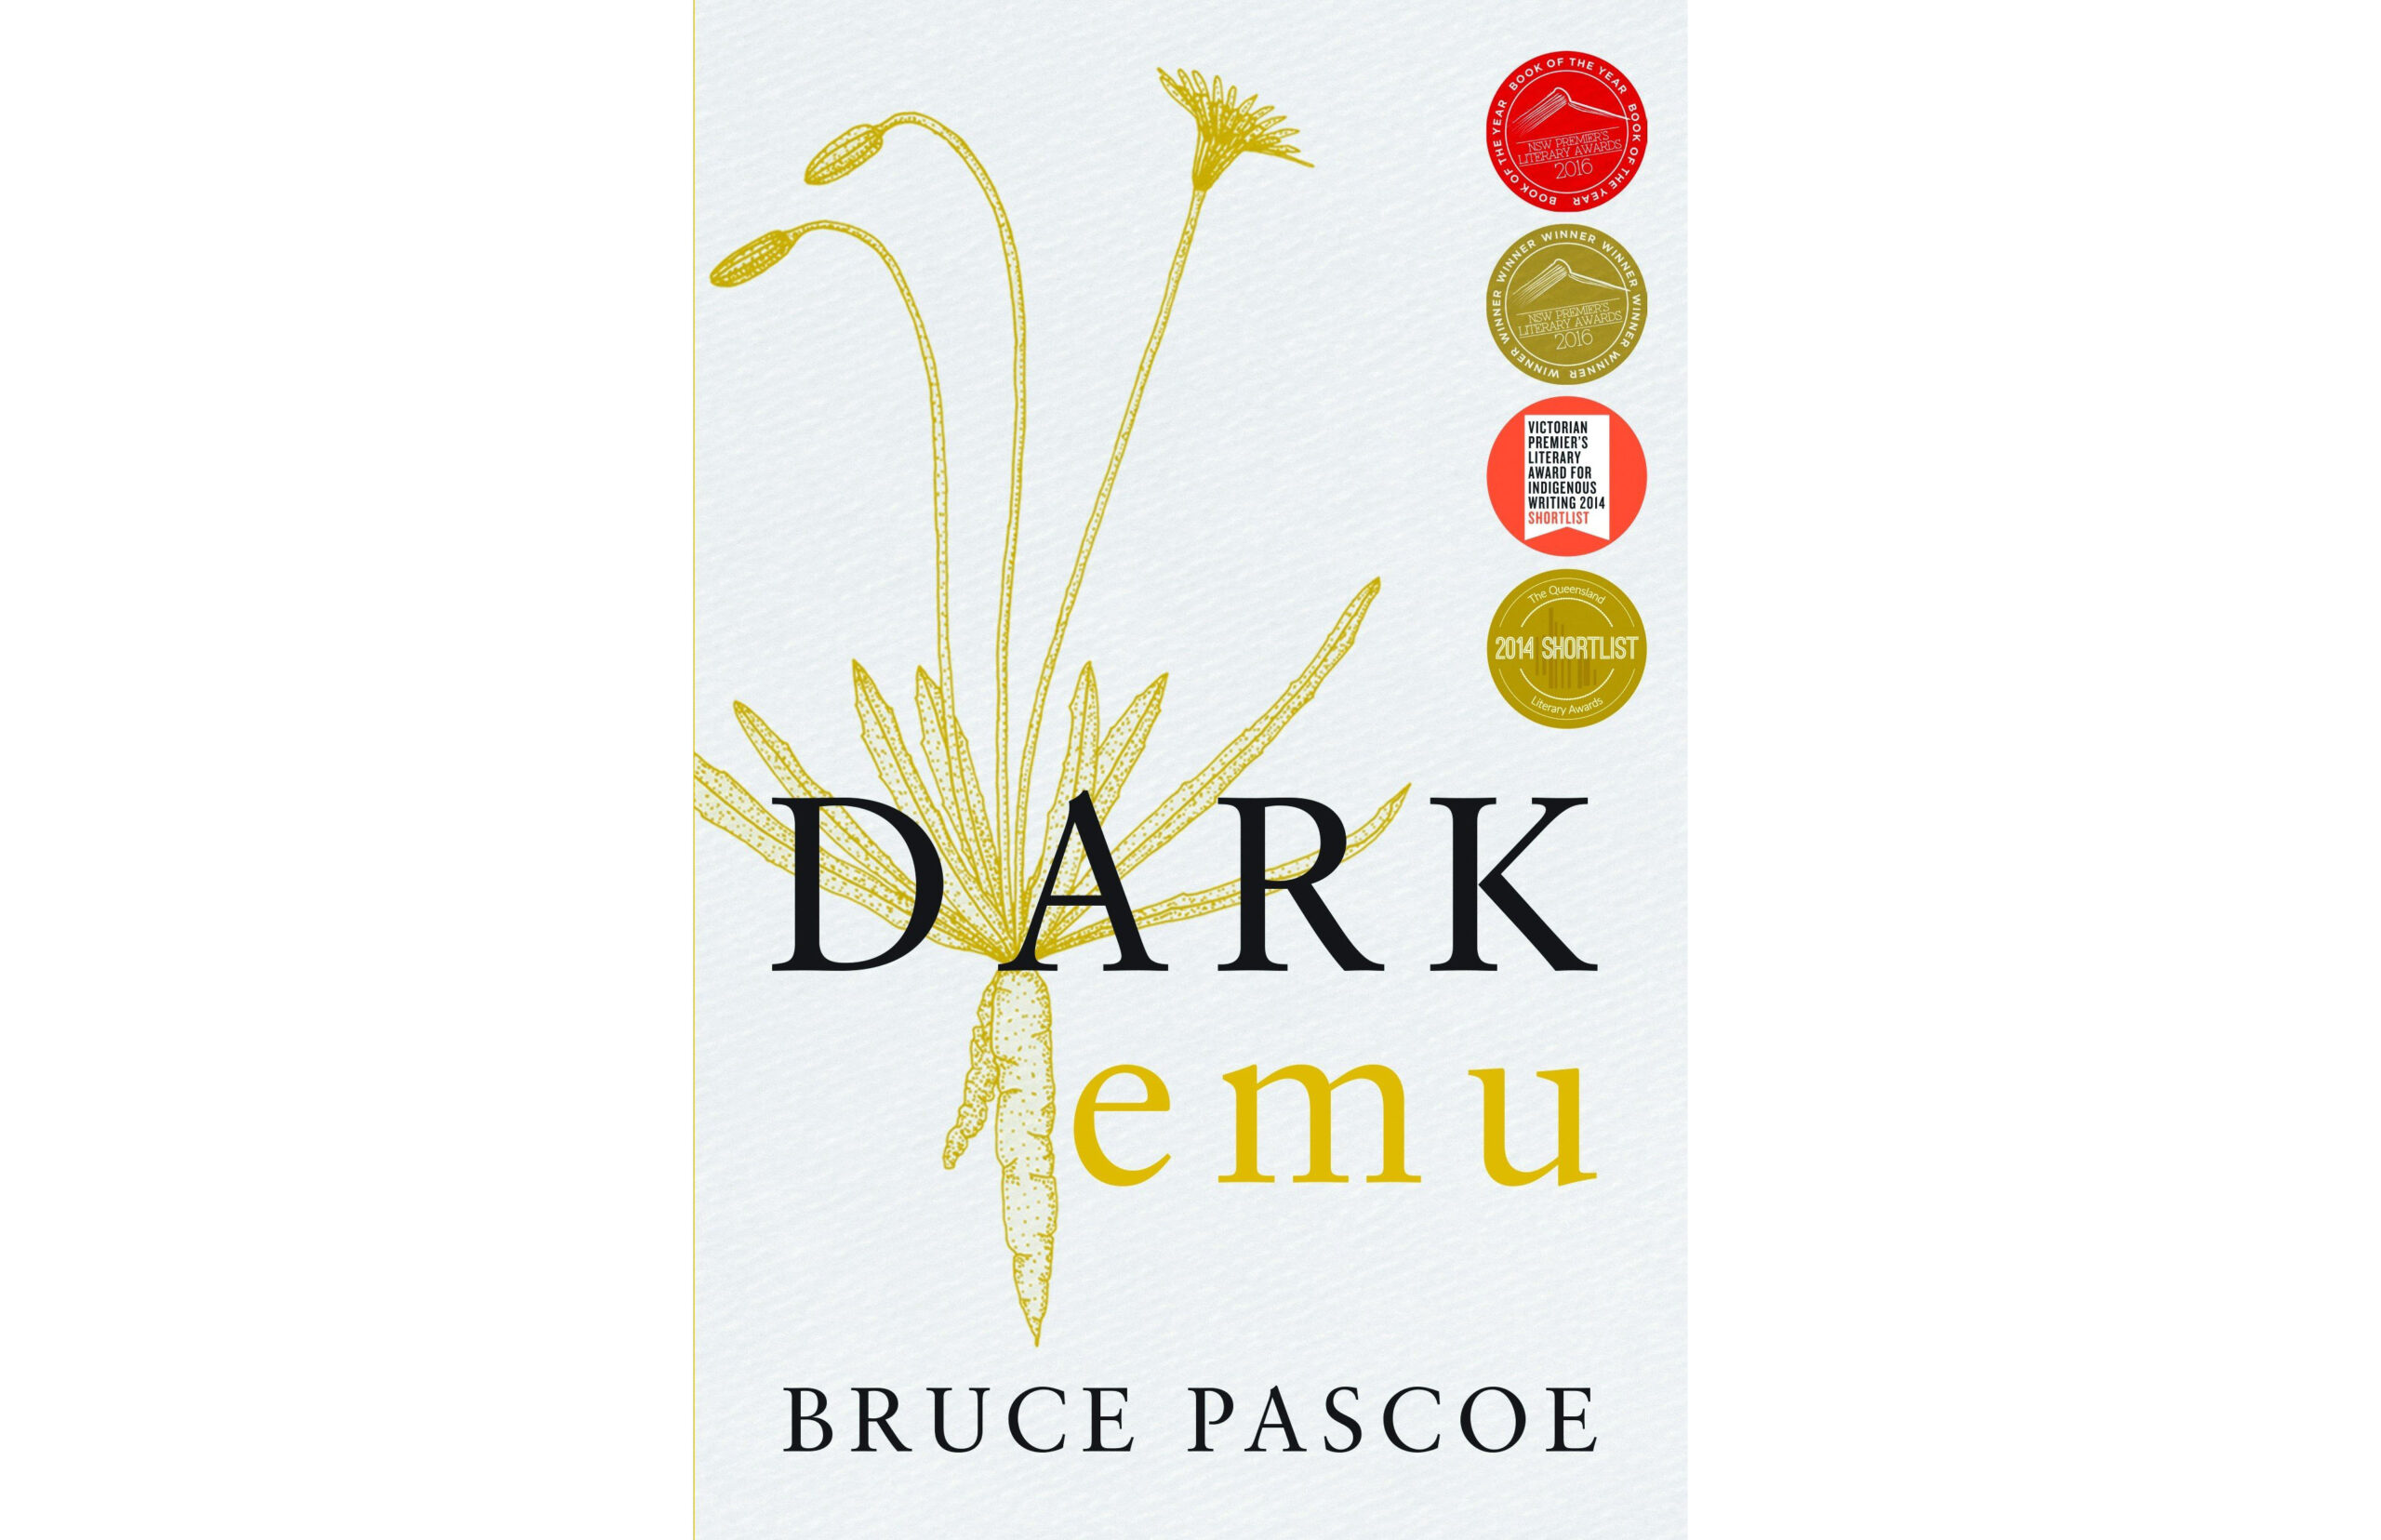 Book review: Farmers or Hunter-gatherers? The Dark Emu Debate rigorously critiques Bruce Pascoe's argument